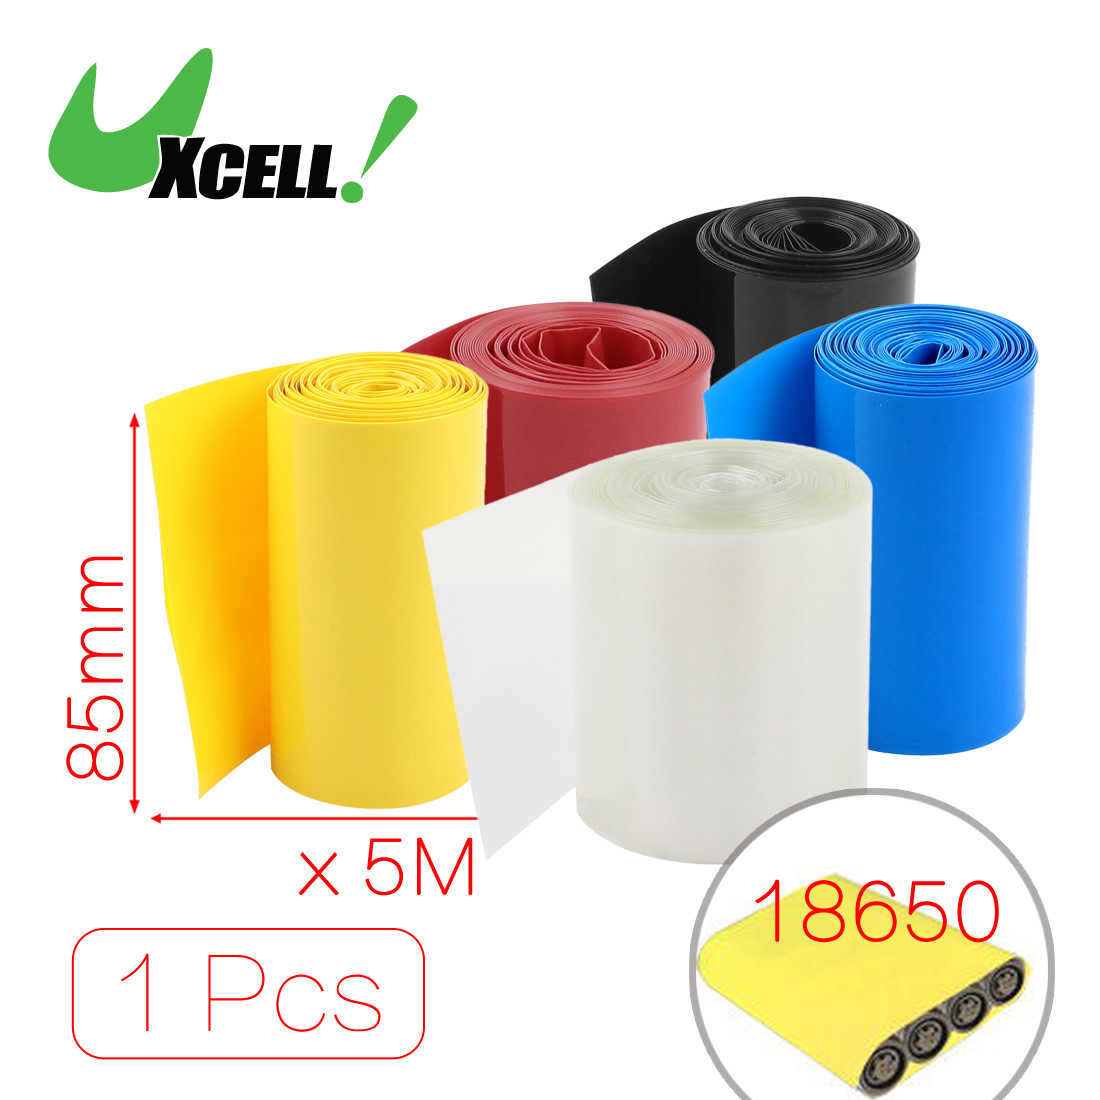 Uxcell 5Meters 85Mm Width Pvc Heat Shrink Wrap Tube Blue For 18650 Battery Pack .   black   blue   clear   red   yellow x com ut175 ilu1 professional pvc flying disc frisbee blue yellow